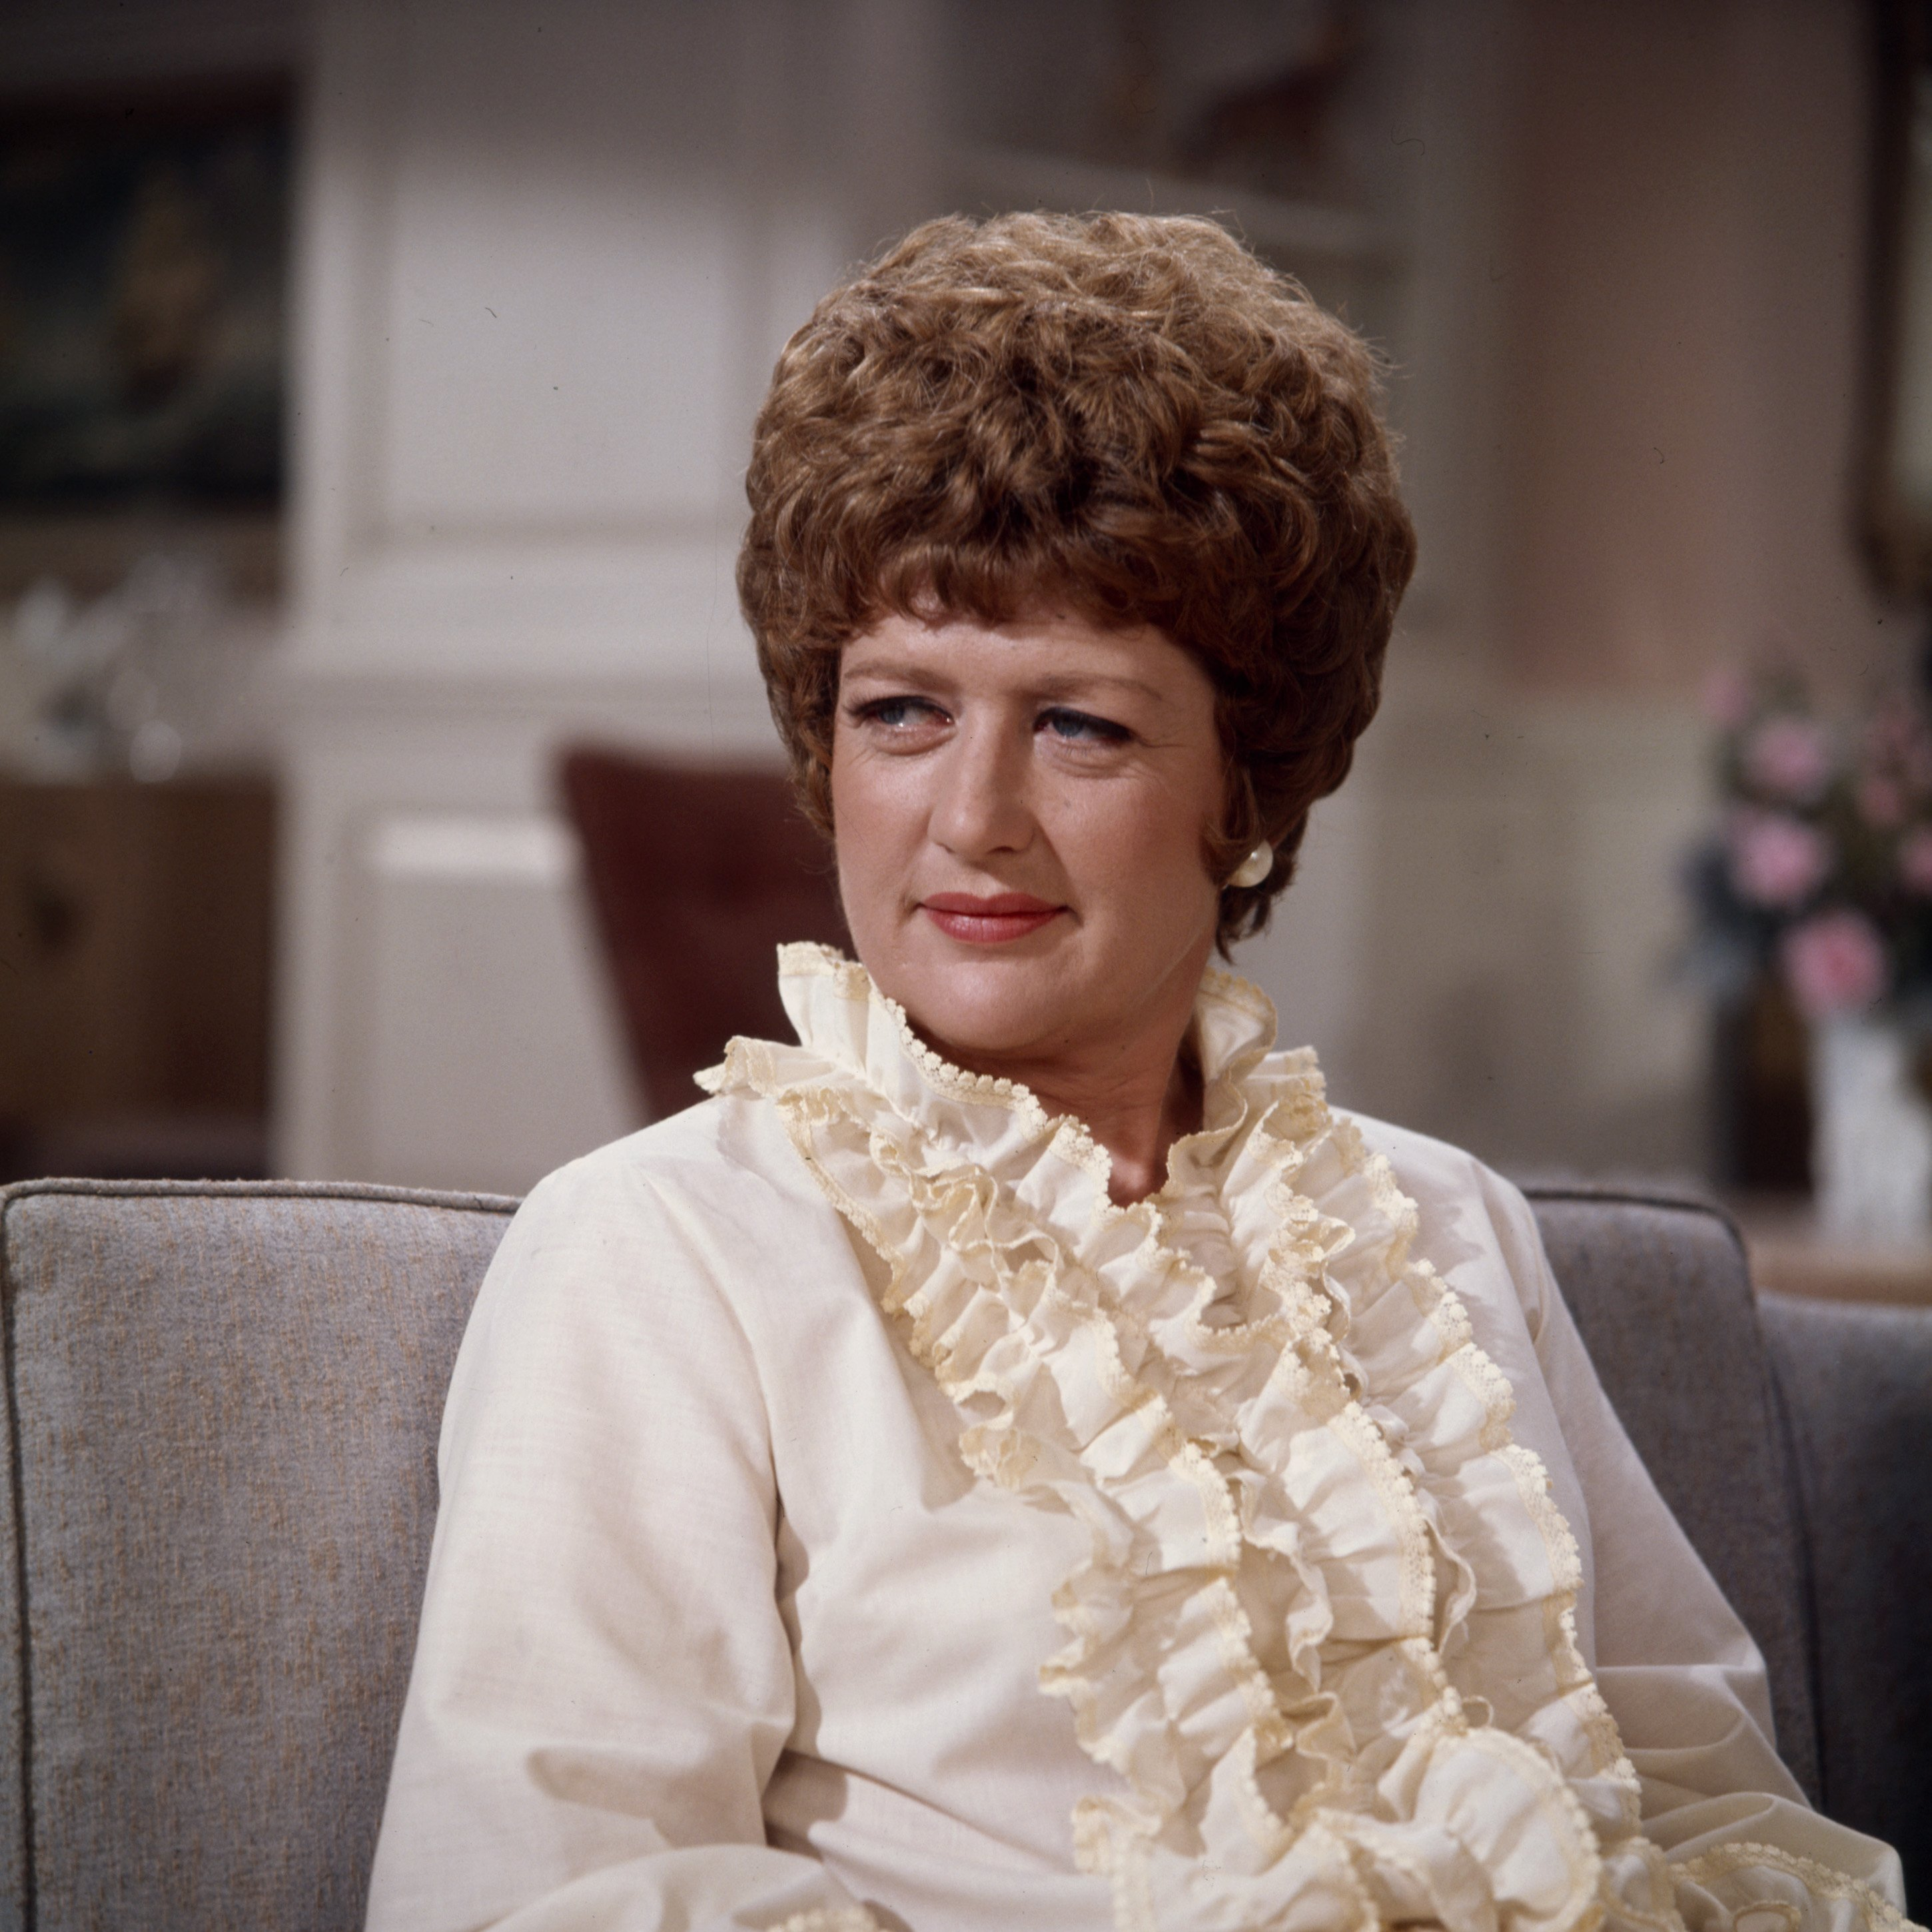 Image Credits: Getty Images | Peggy Pope died at 91 years old